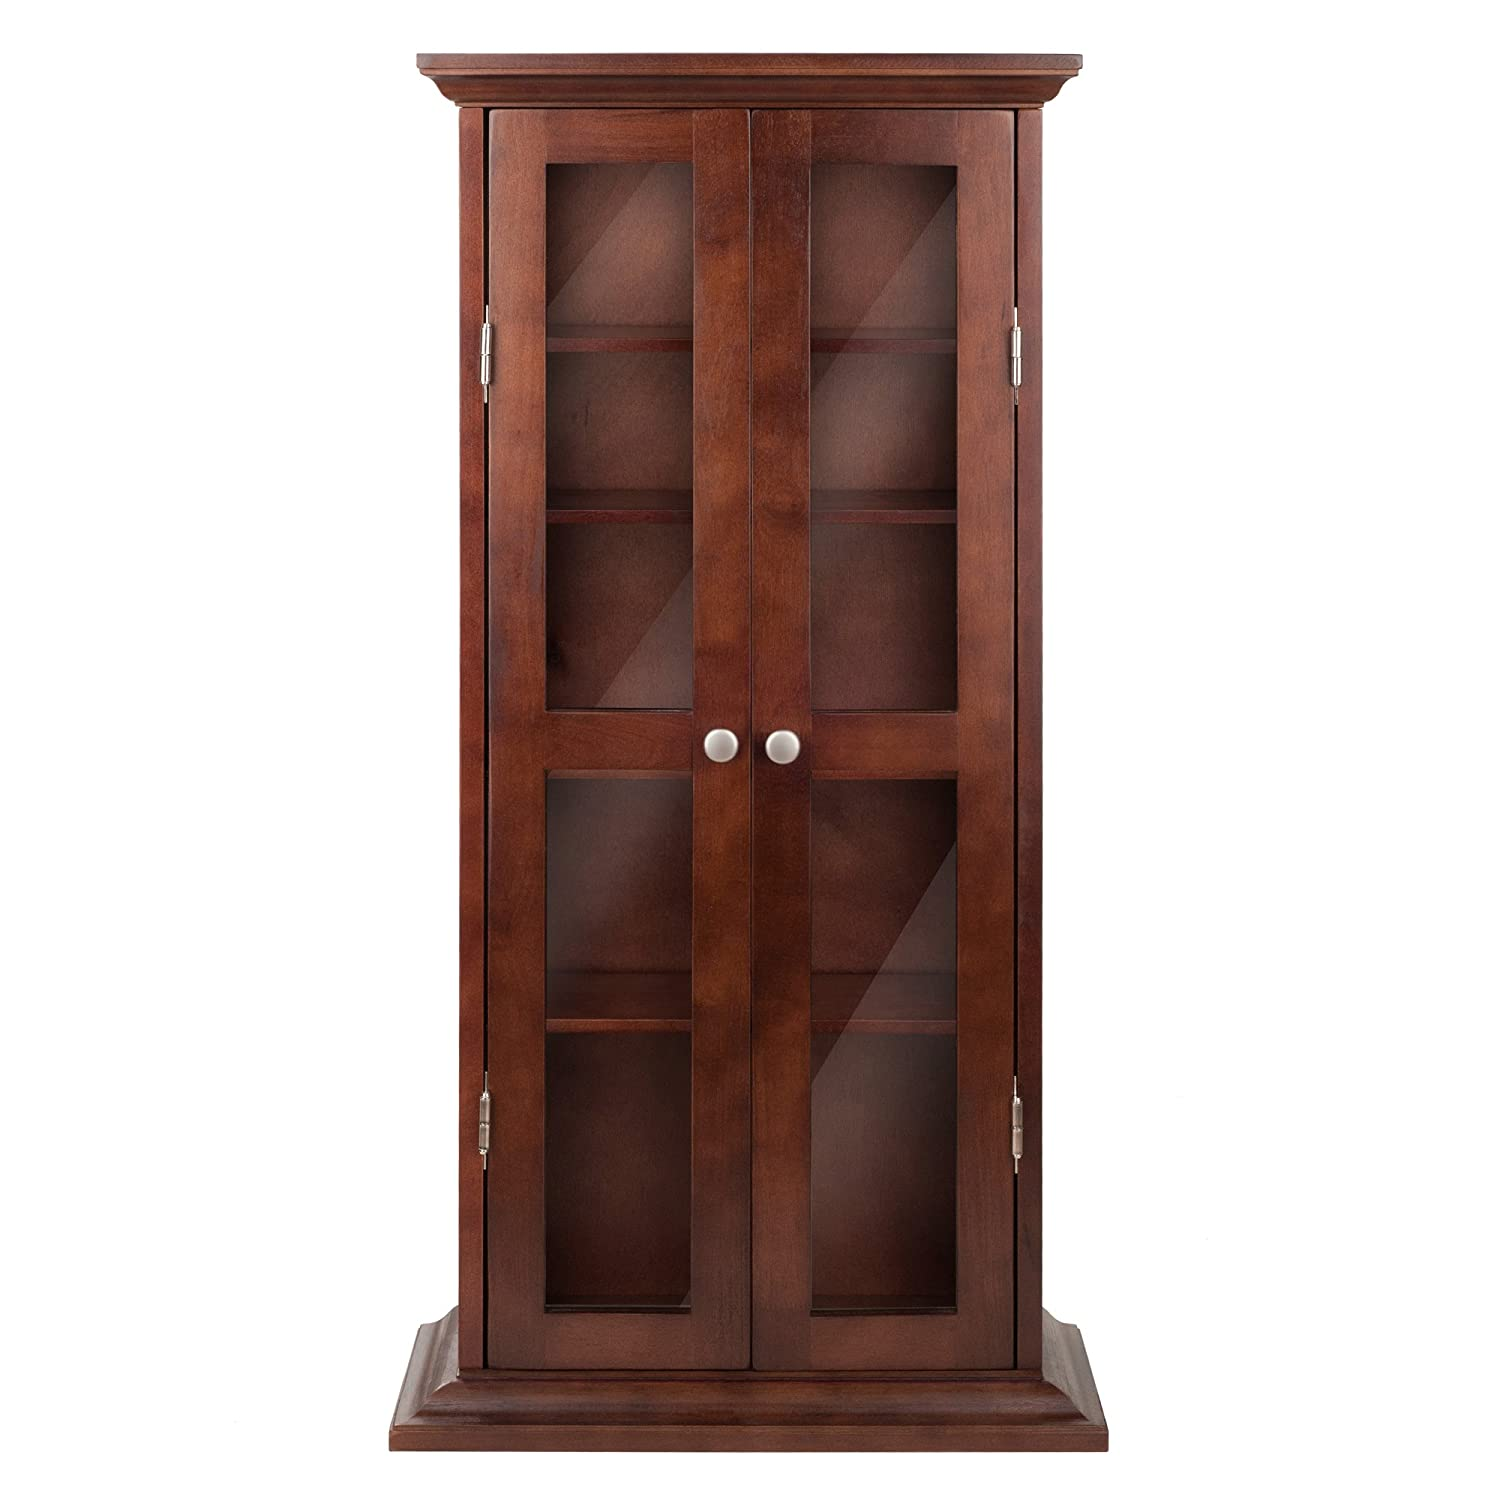 Cherry Wood Dvd Storage Cabinet Amazoncom Winsome Wood Cd Dvd Cabinet With Glass Doors Antique